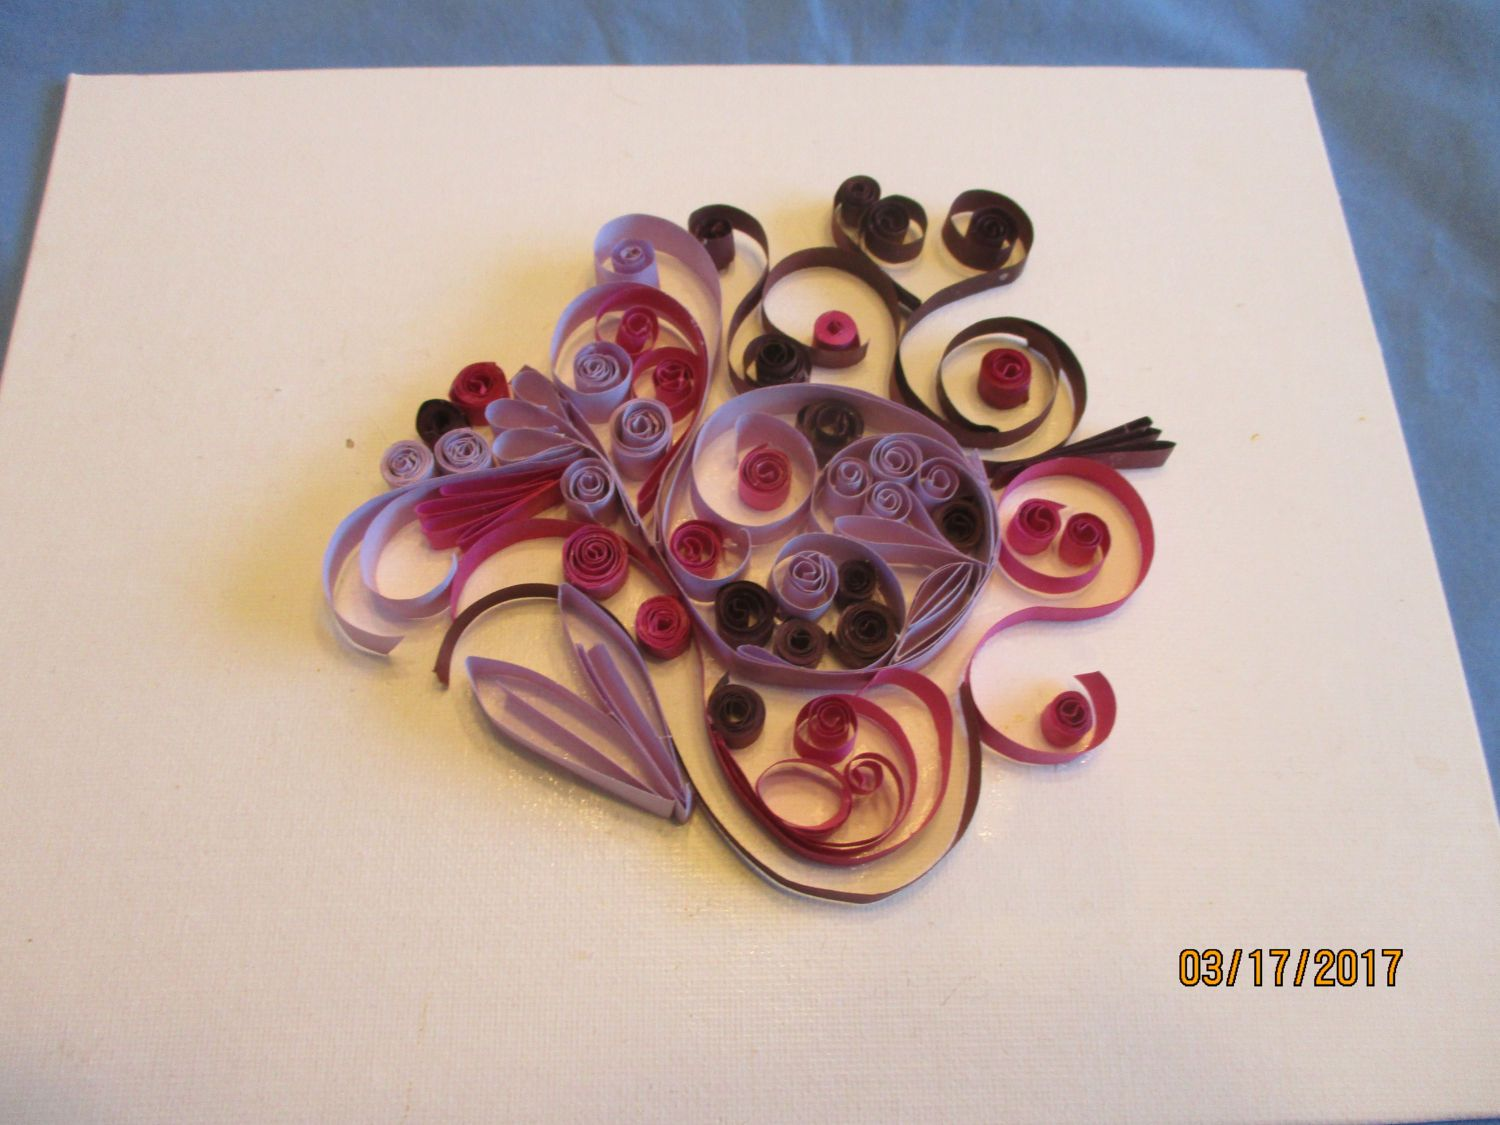 Quilled wall artquilled home decorpaper quilled artwall decor